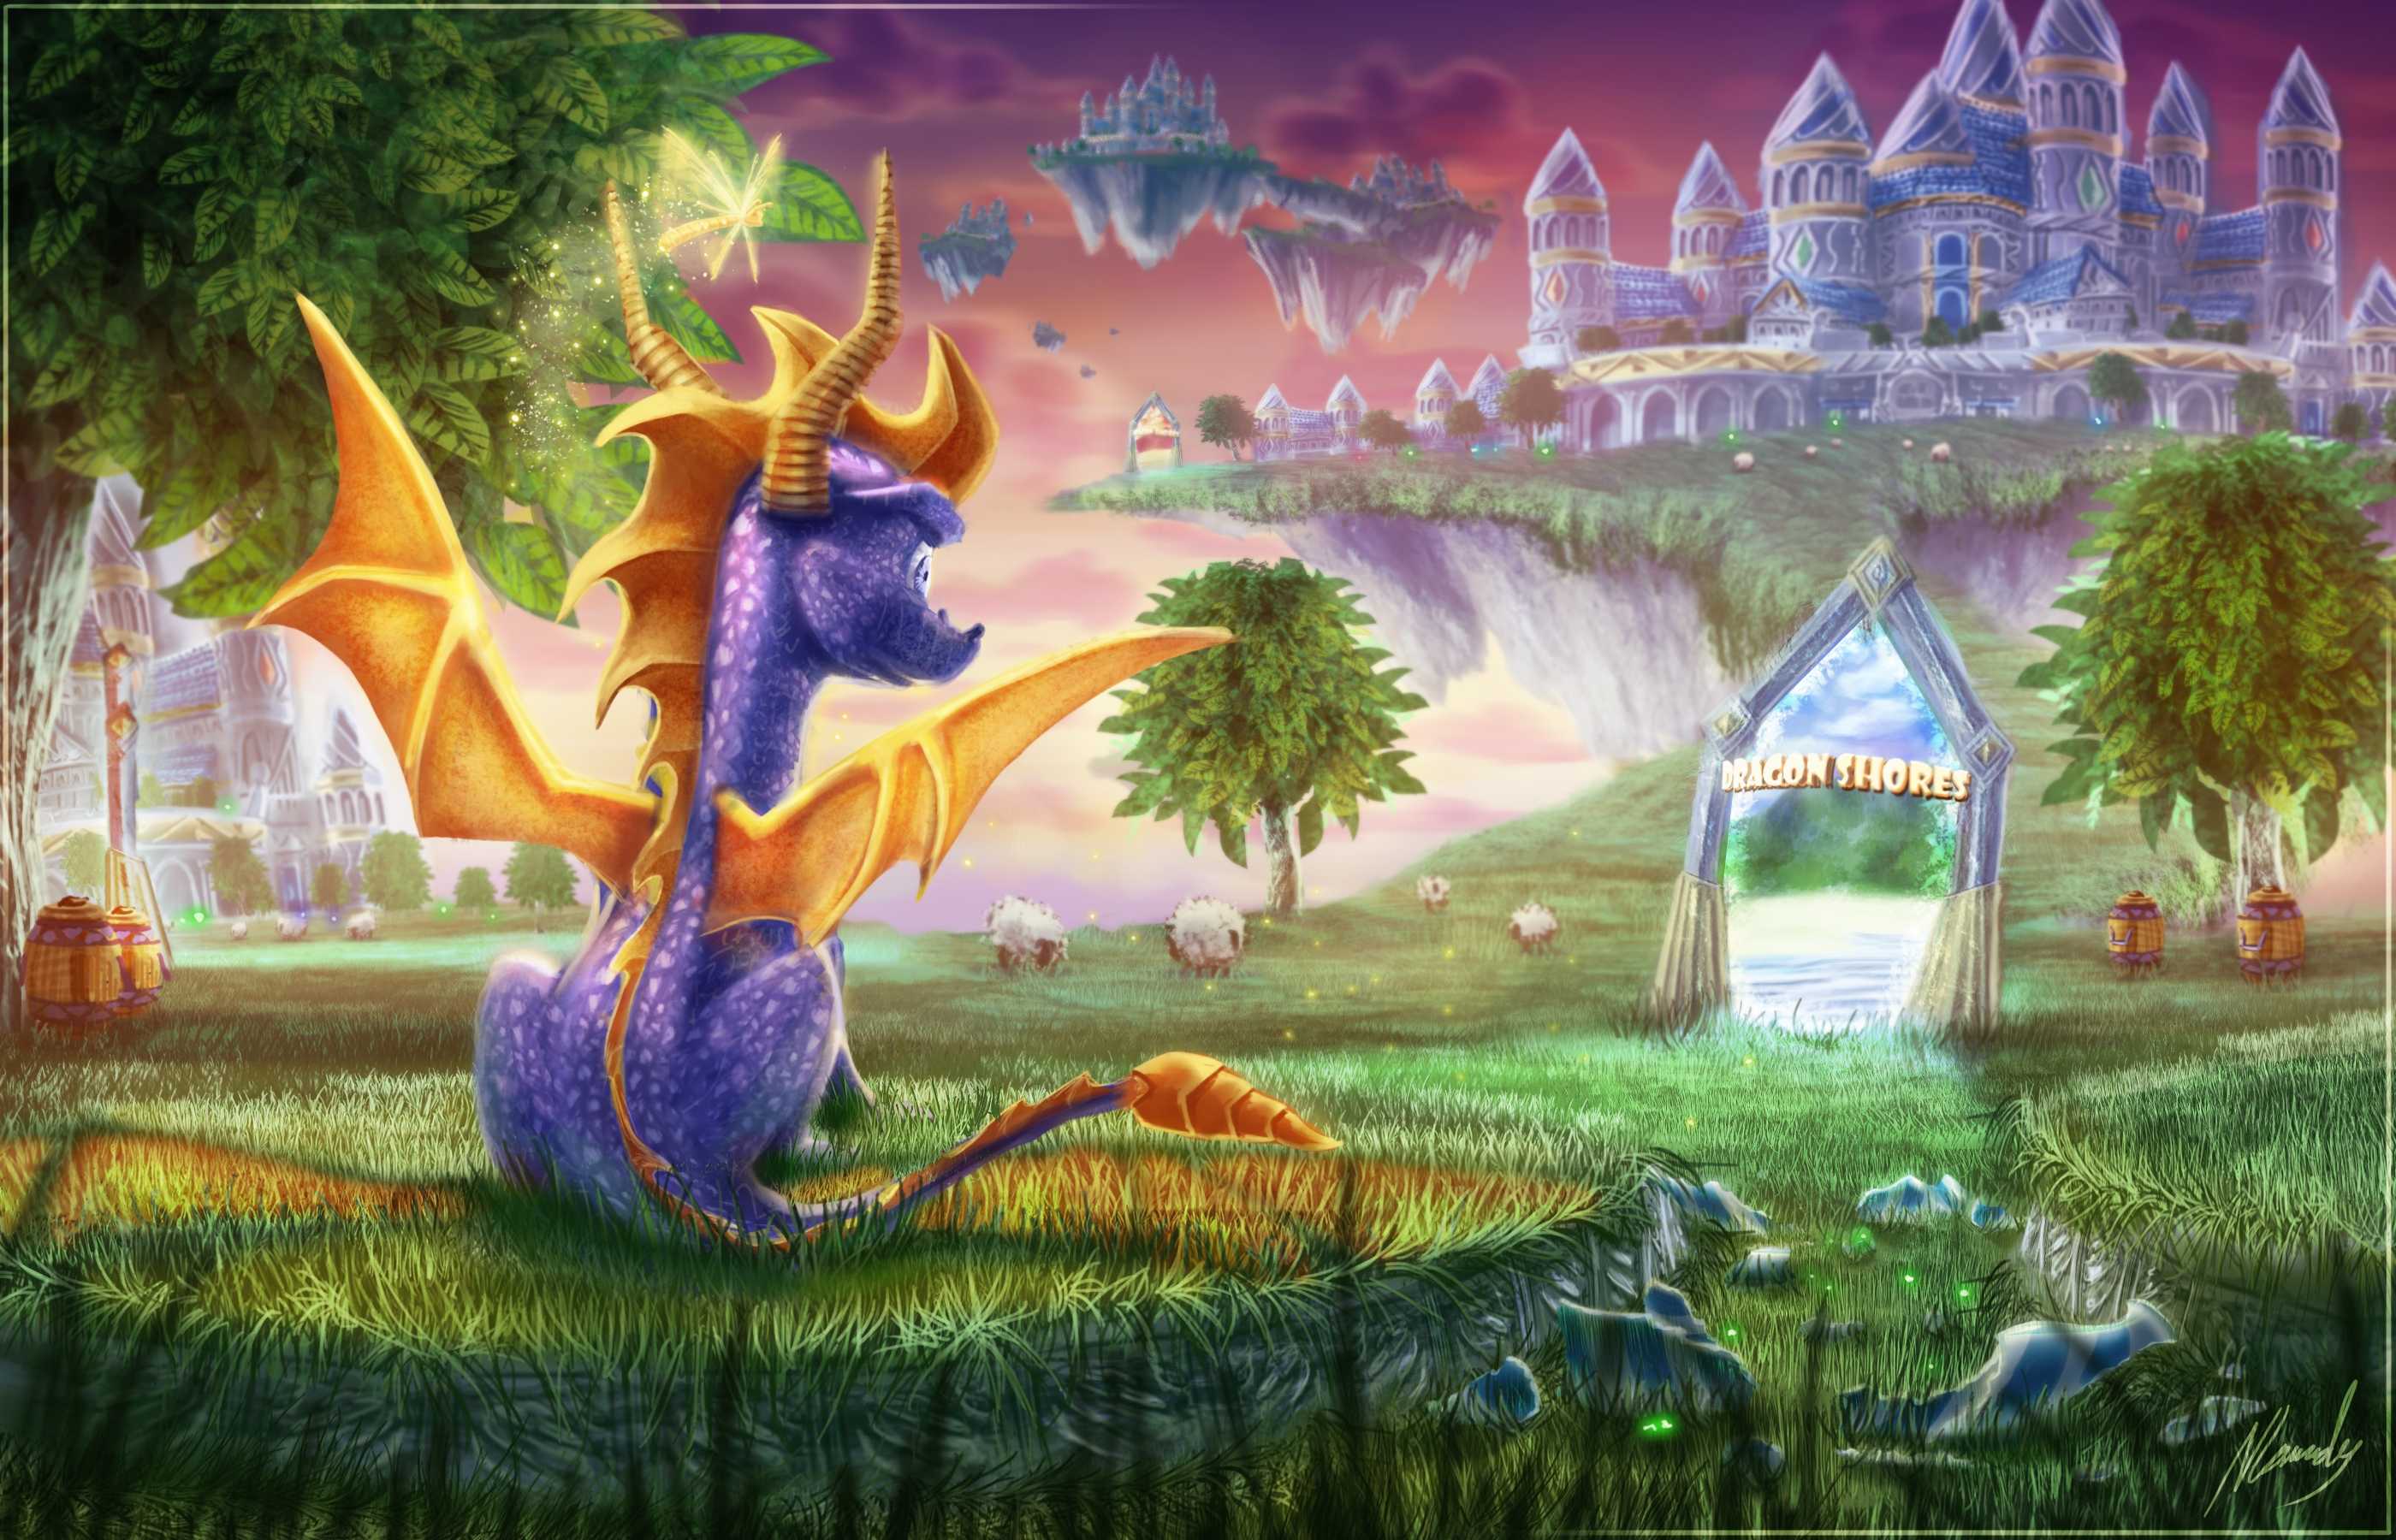 72 spyro the dragon hd wallpapers | background images - wallpaper abyss